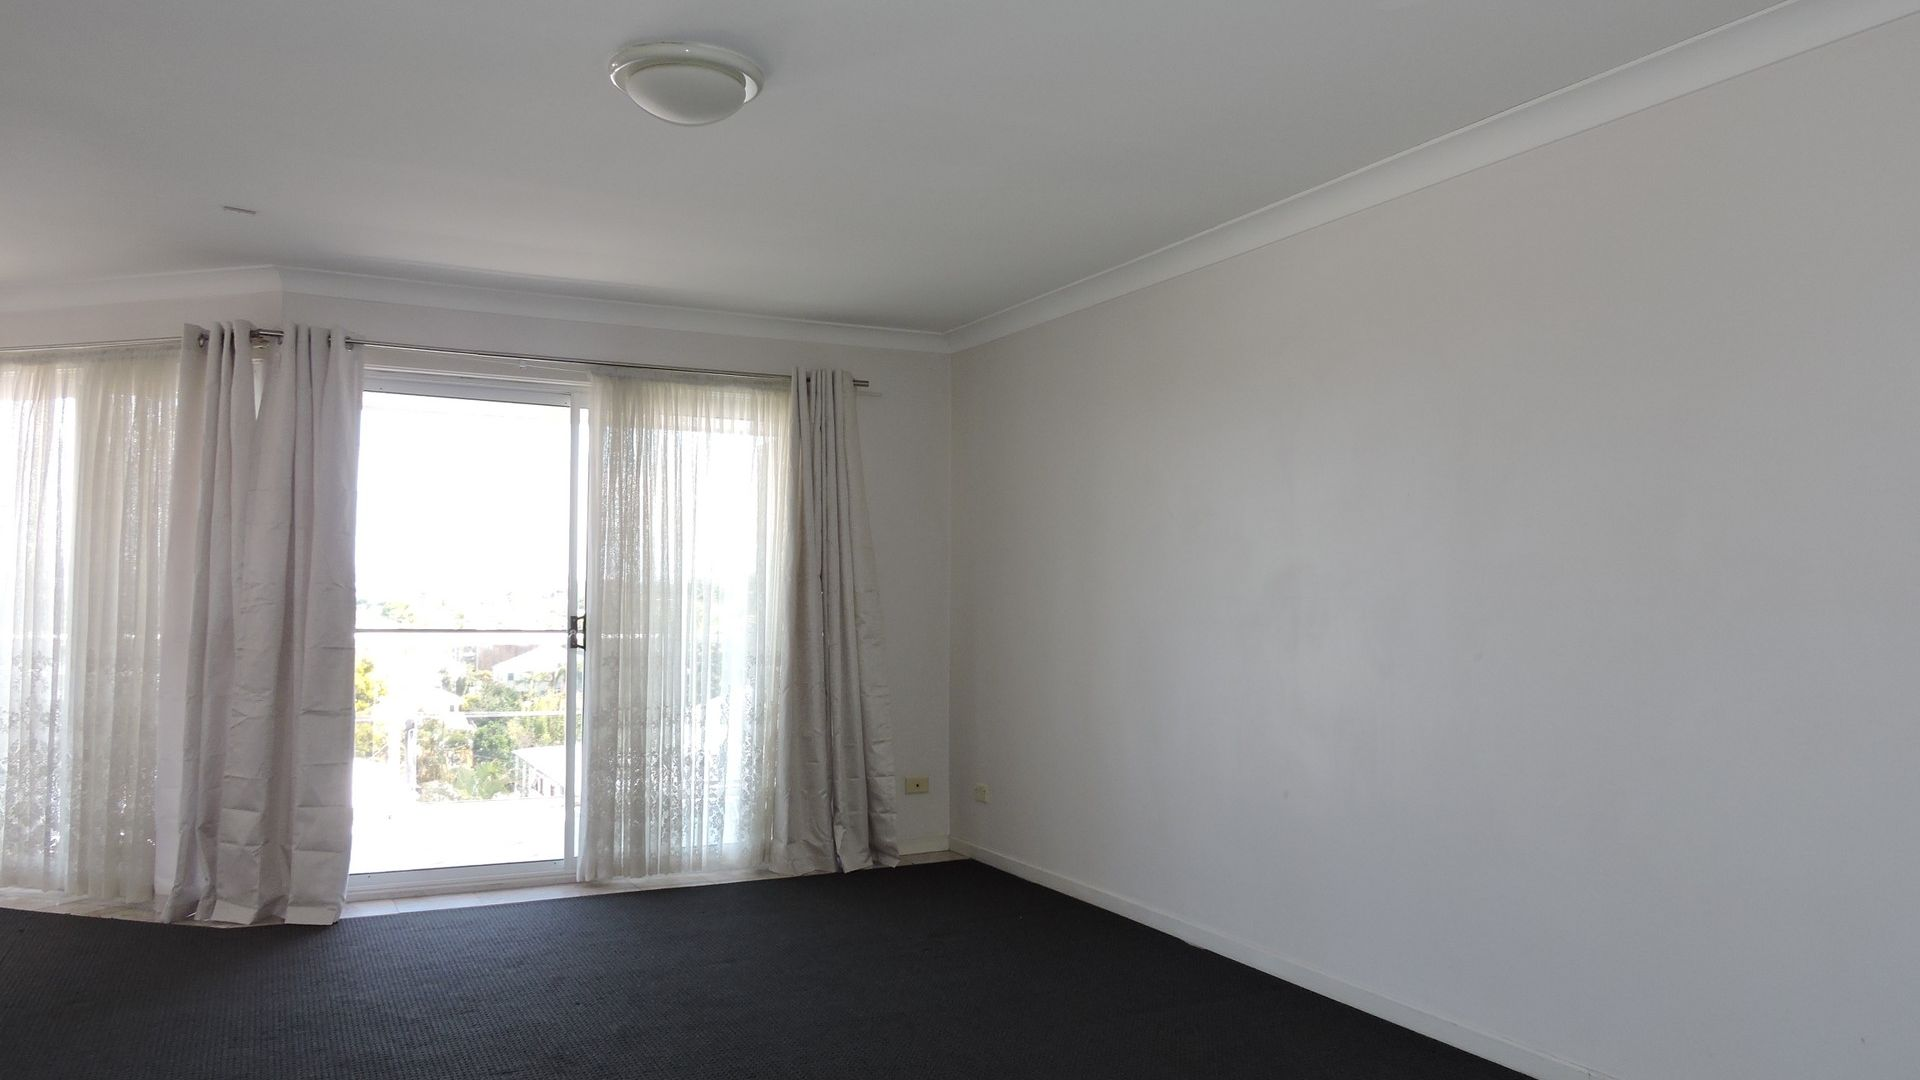 6/123 Stoneleigh Street, Lutwyche QLD 4030, Image 6